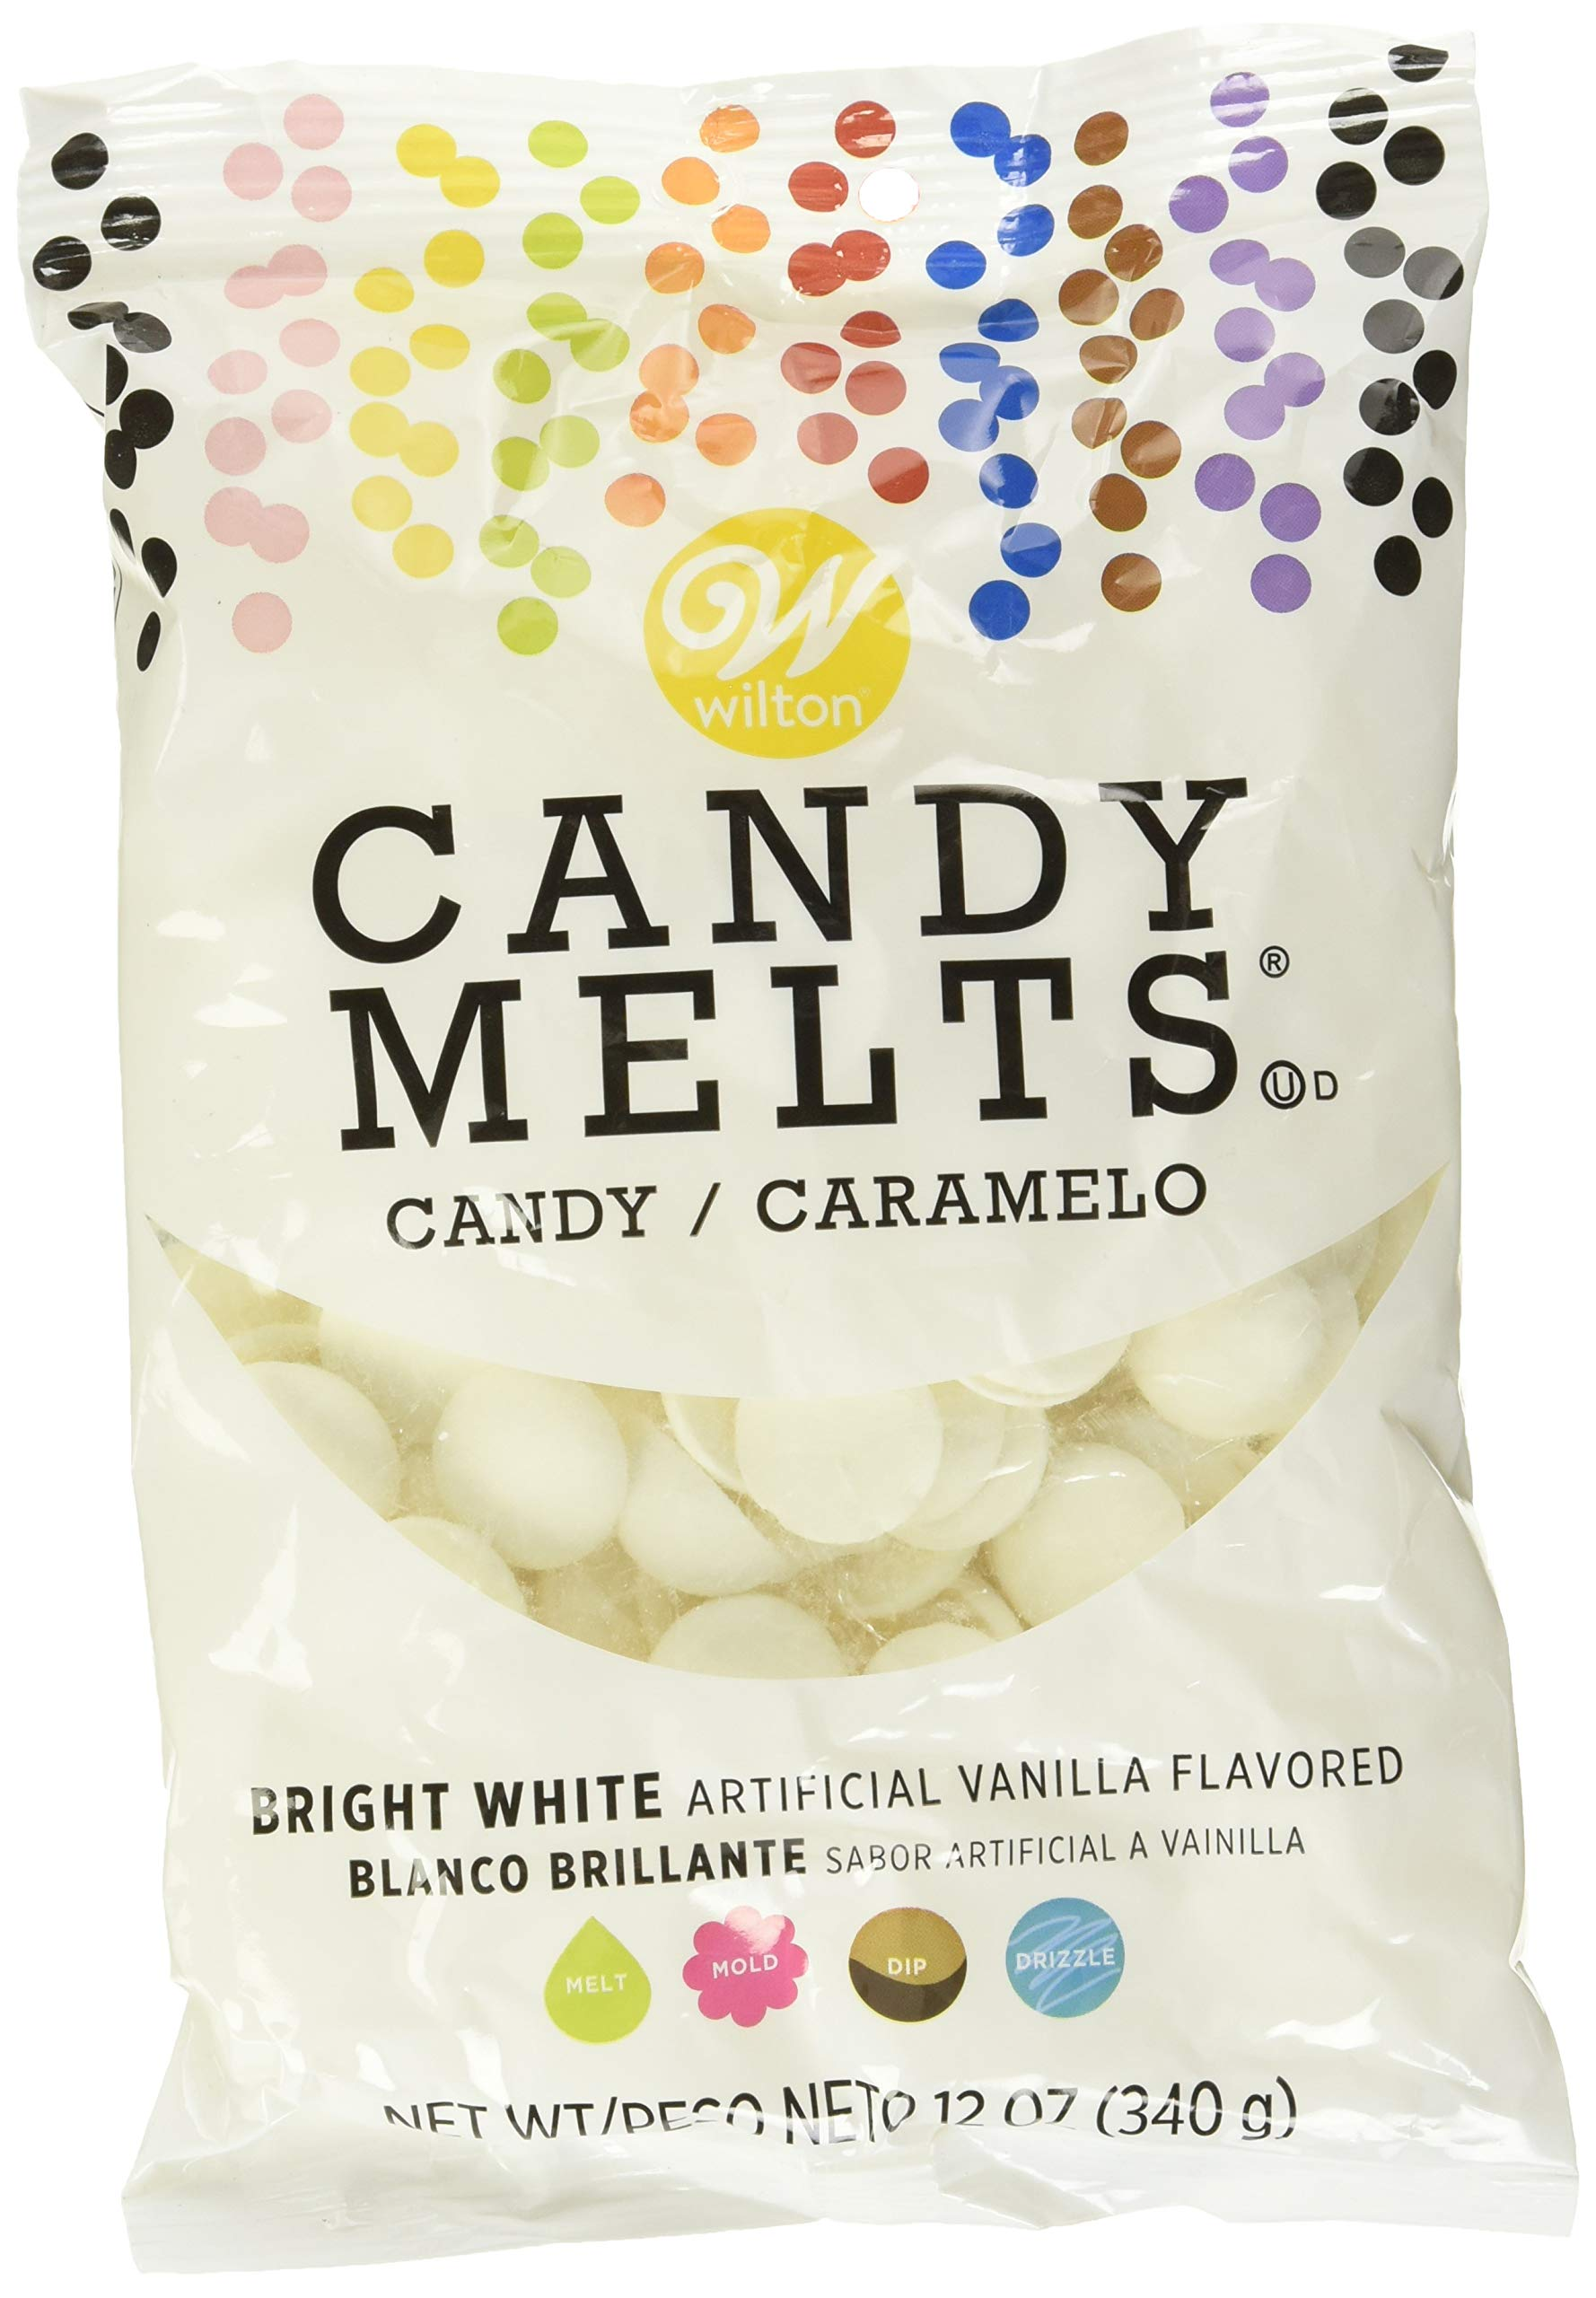 Wilton 1911-6065 Craft Supplies, Bright white                ROSANNA PANSINO by Wilton Nerdy Nummies Candy Melting Pot - Chocolate Melting Pot                Wilton Pink Candy Melts Candy, 12 oz.                Bundle of Wilton Candy Melts, Red and Green, 12-ounce Each, 1911-1357 (Pack o...